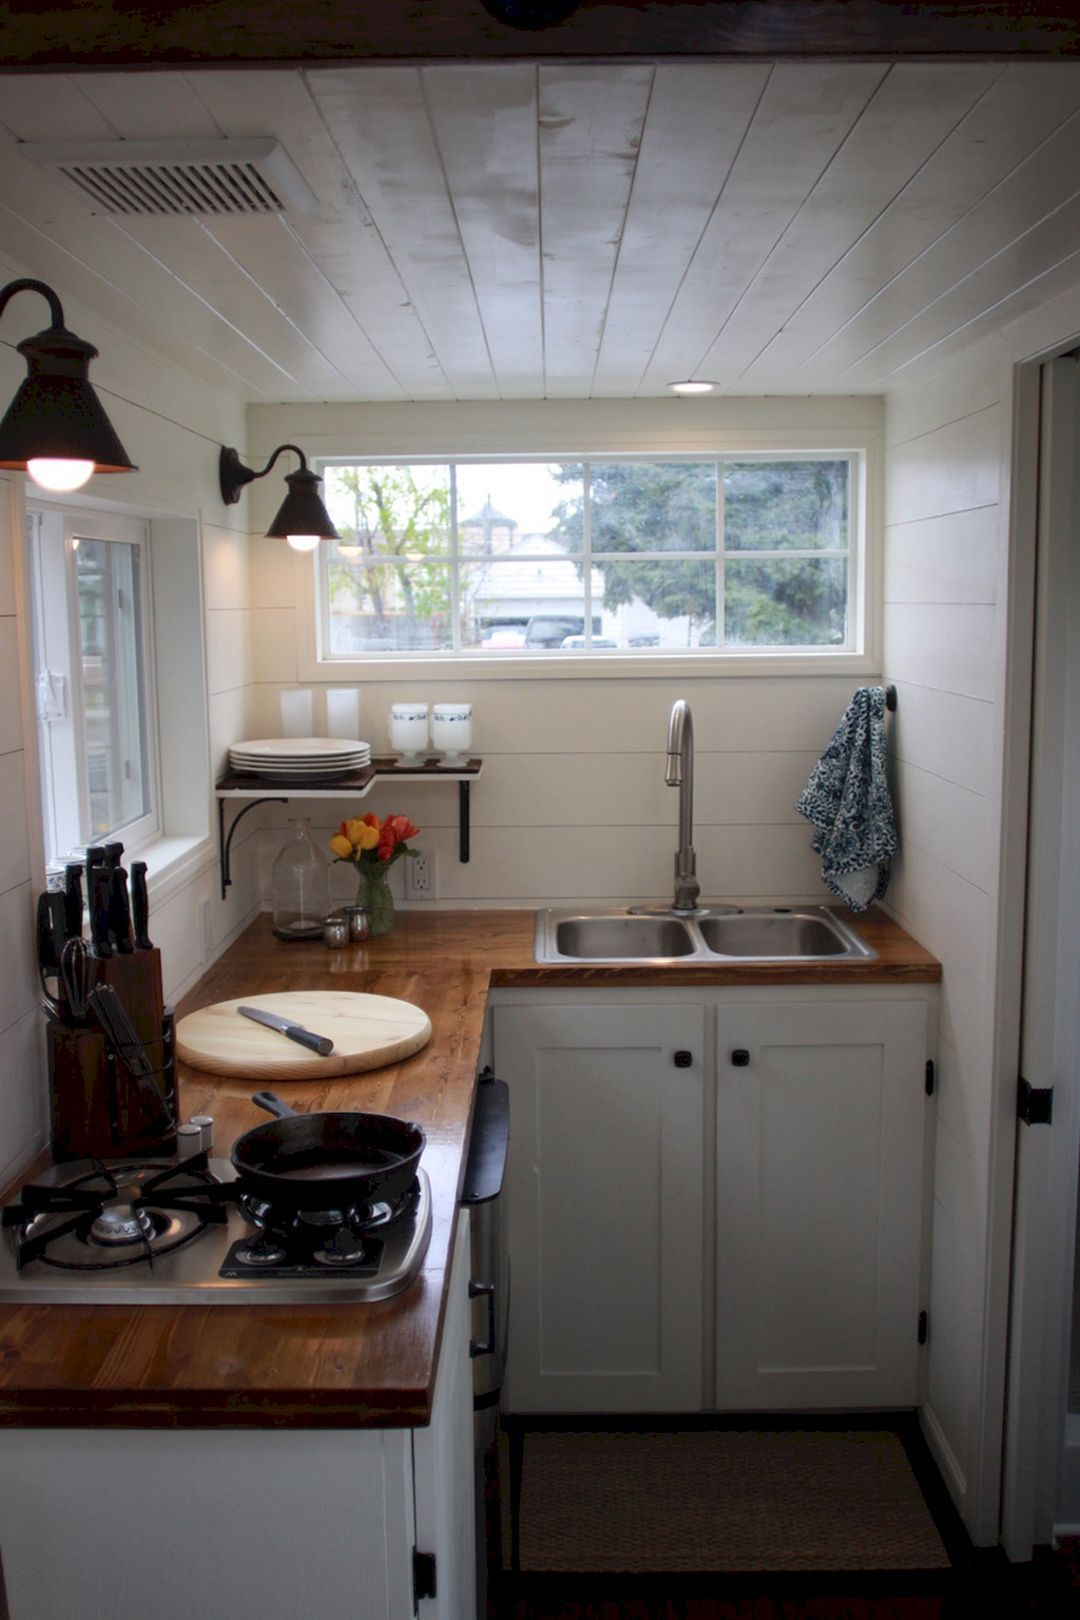 Awesome Tiny Kitchen Design For Your Beautiful Tiny House